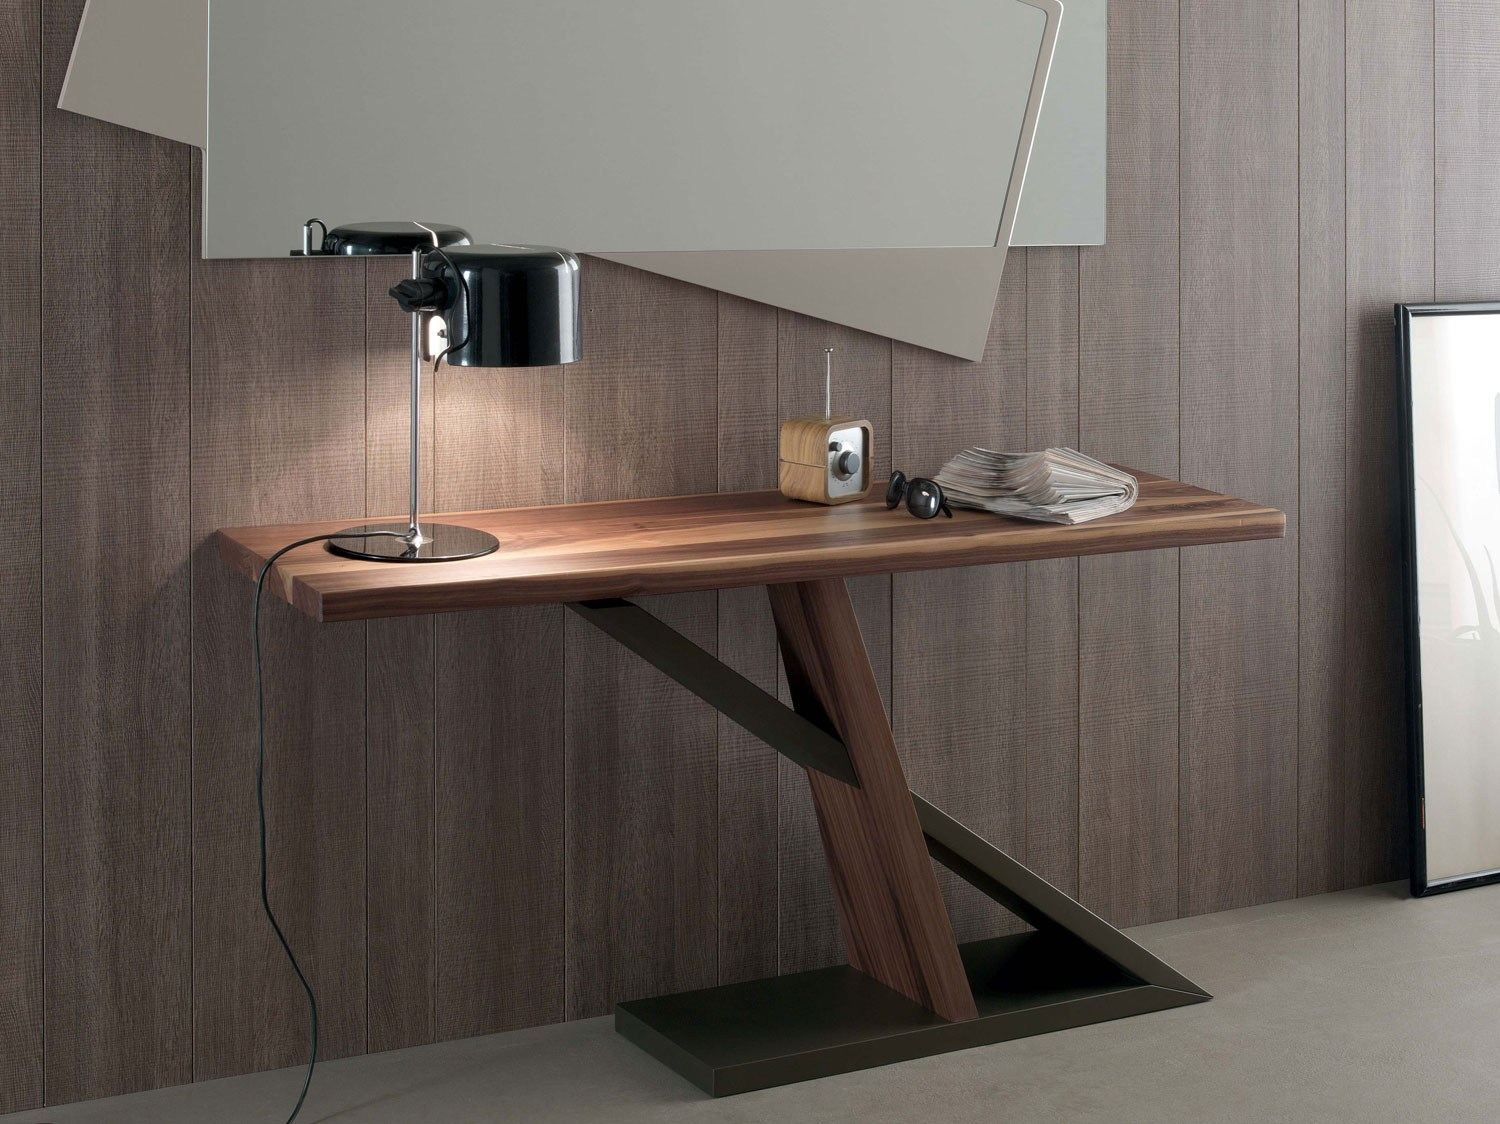 Zed table console by italy dream design kallist - Table console design ...